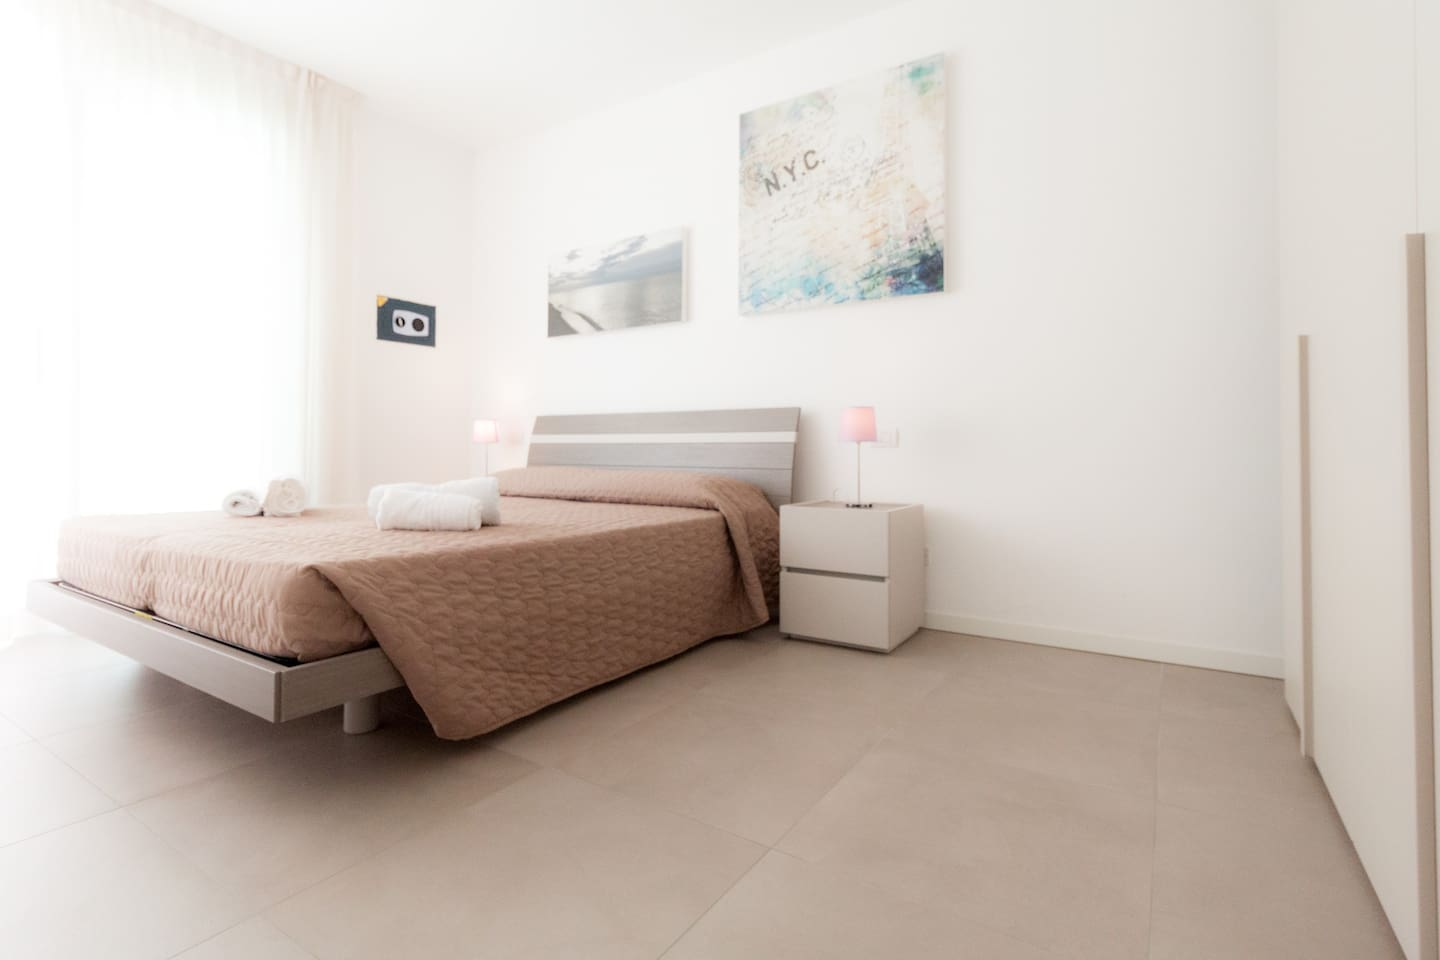 Camera matrimoniale con ampio armadio e cassaforte/Double room with queen-size bed, large closet and strongbox